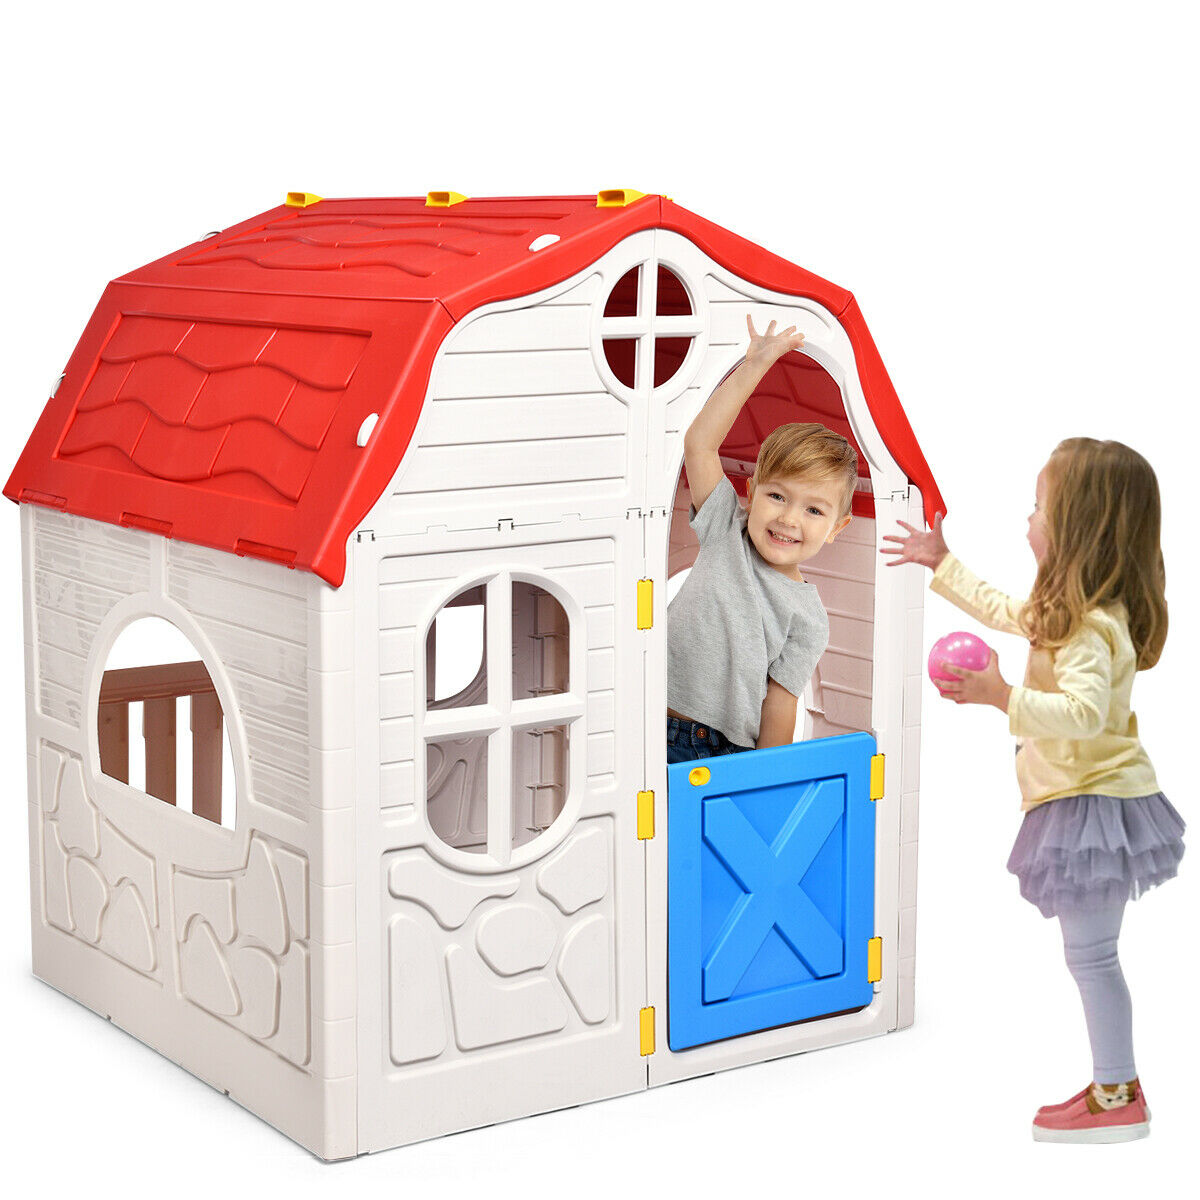 Baby Children Indoor Outdoor Playset Fun Toy Doll Bear Playhouse Play Tent